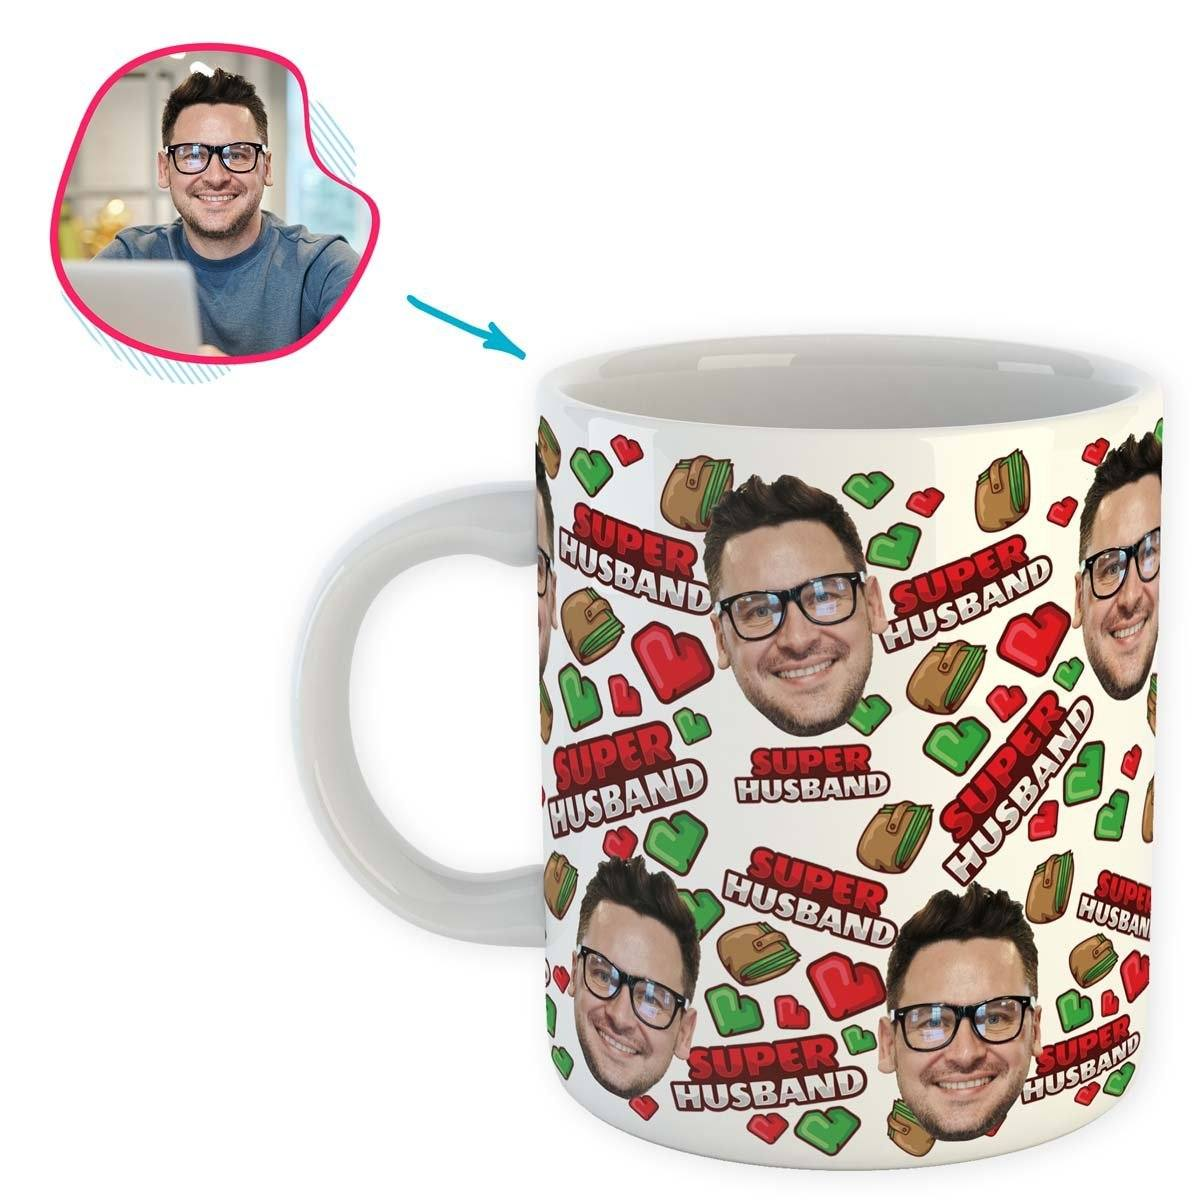 White Husband personalized mug with photo of face printed on it